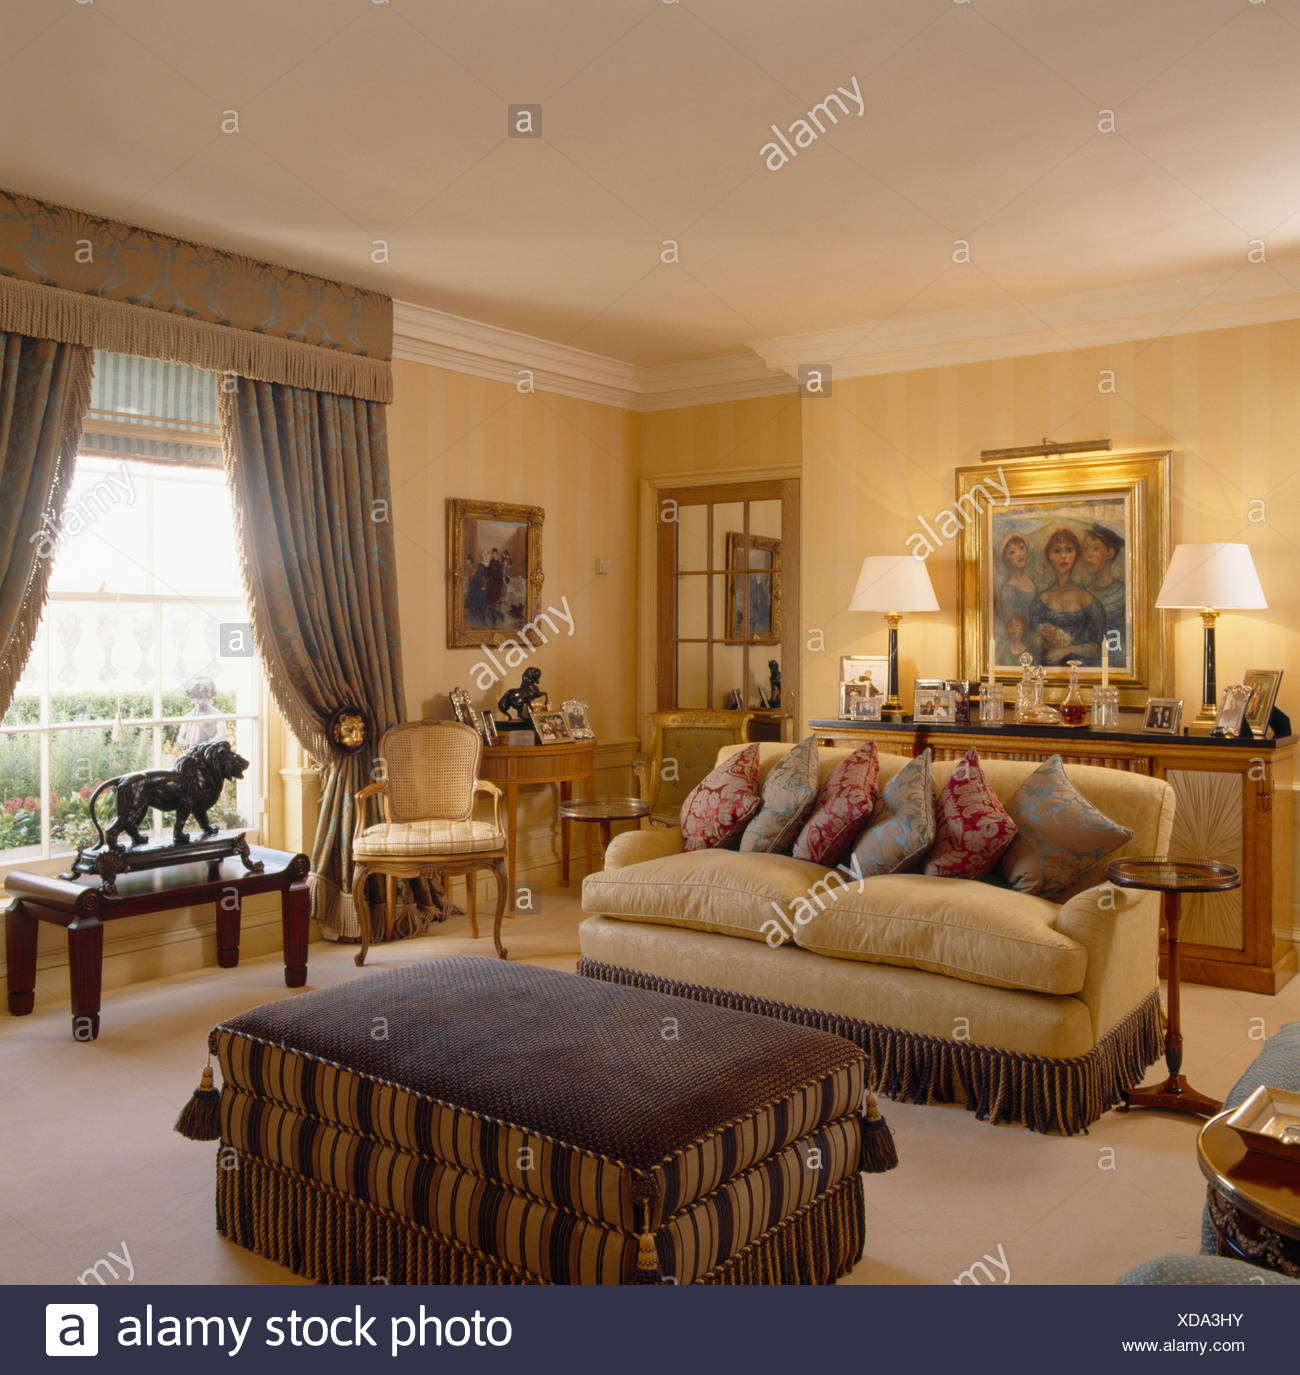 Comfy Cream Sofa Piled With Cushions In Living Room With